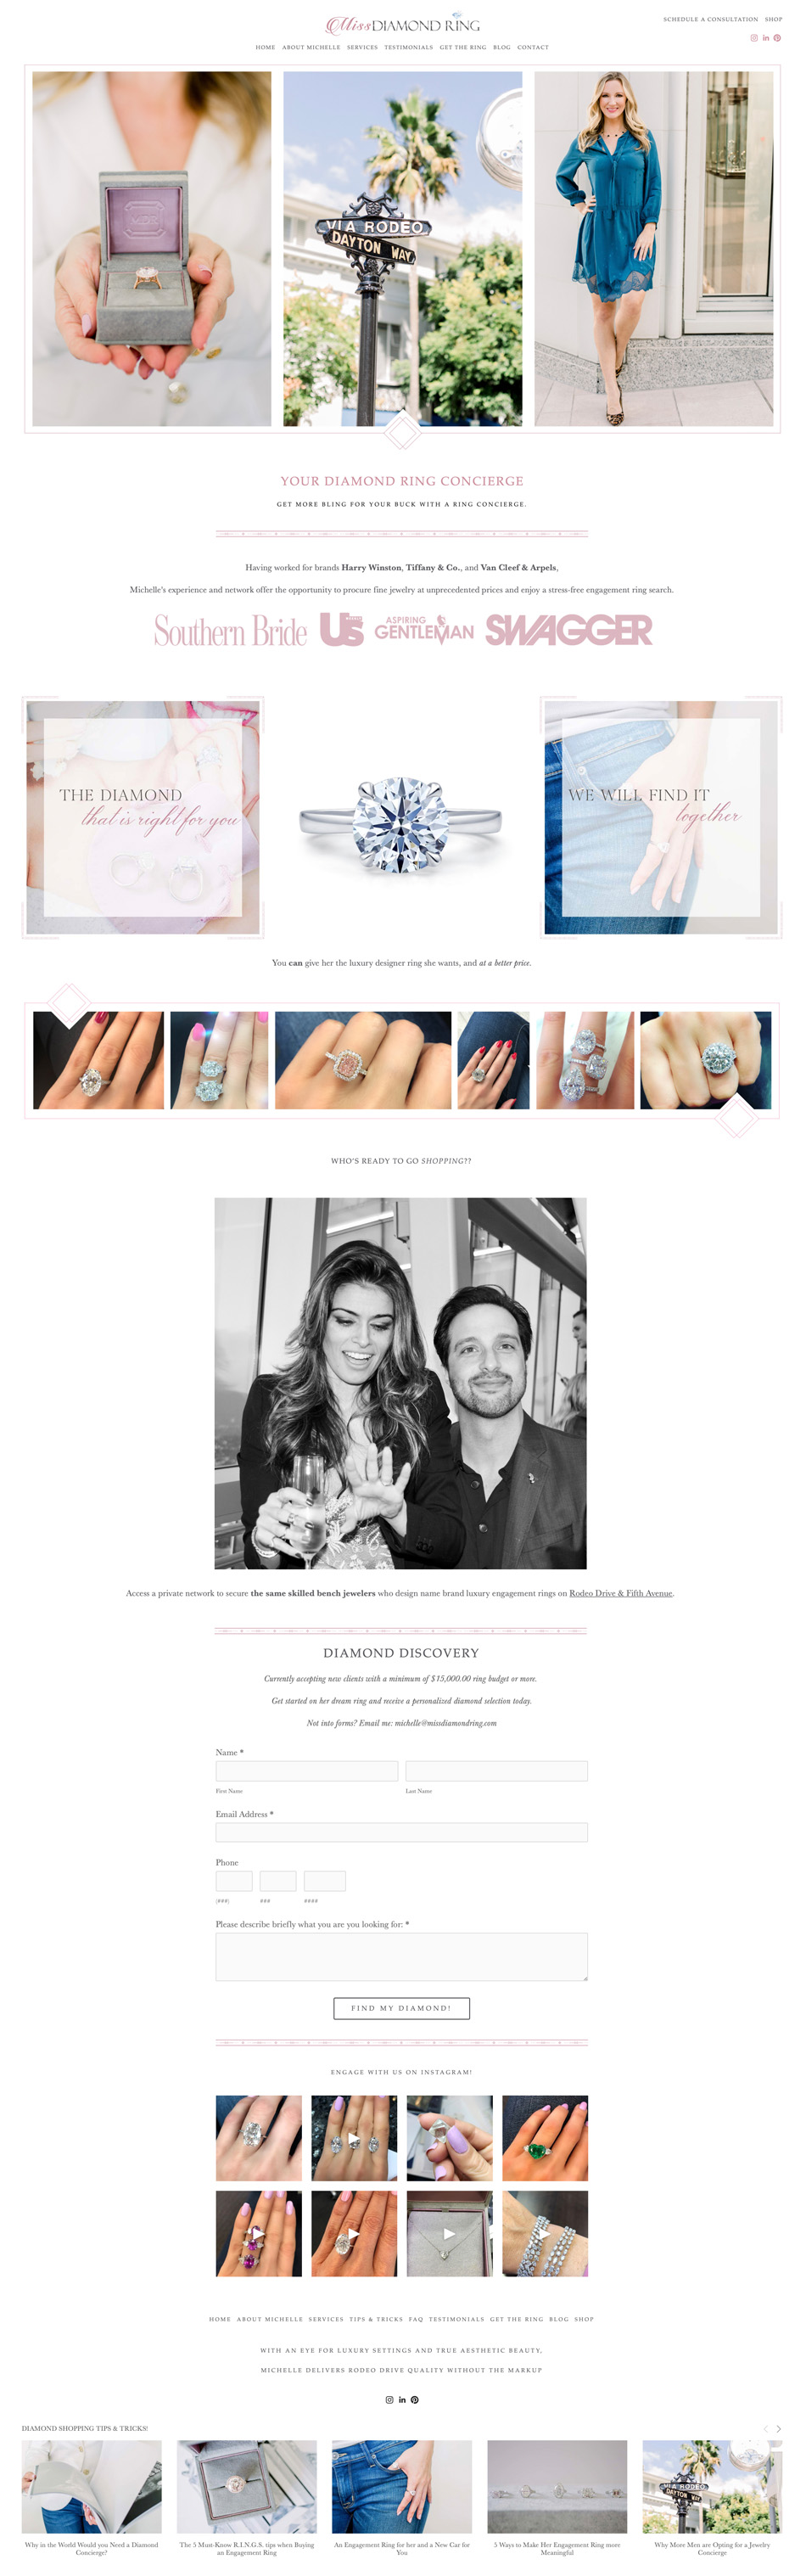 Beverly Hills Diamond Engagement Ring Concierge | Miss Diamond Ring | The Editor's Touch Squarespace Website Designer